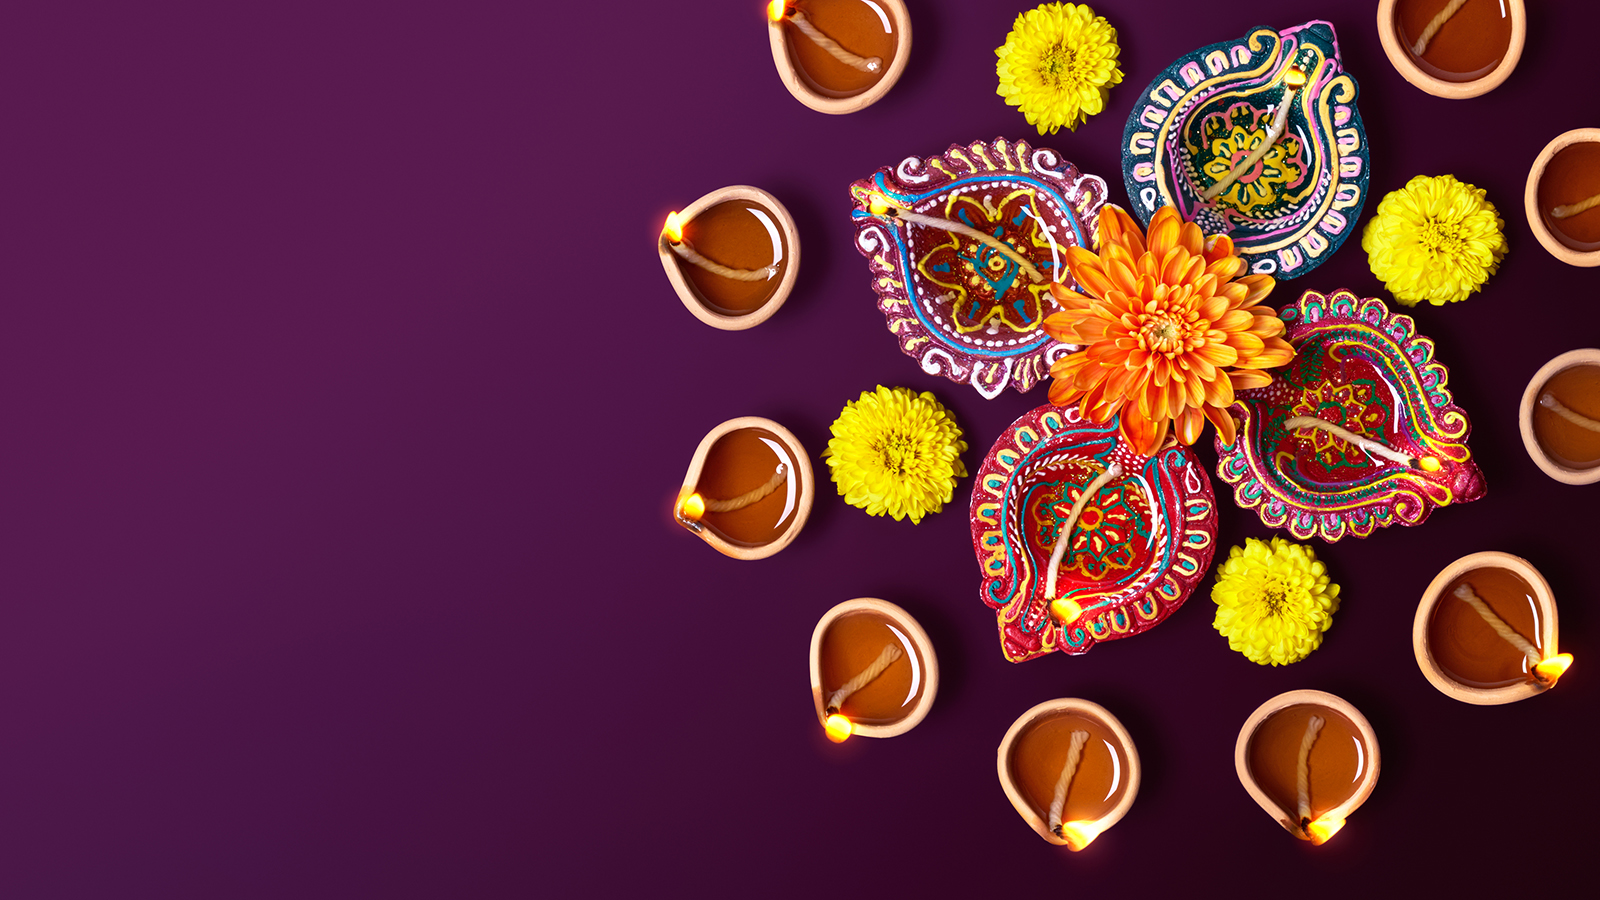 How To Best Celebrate the Five Days of Diwali Festival